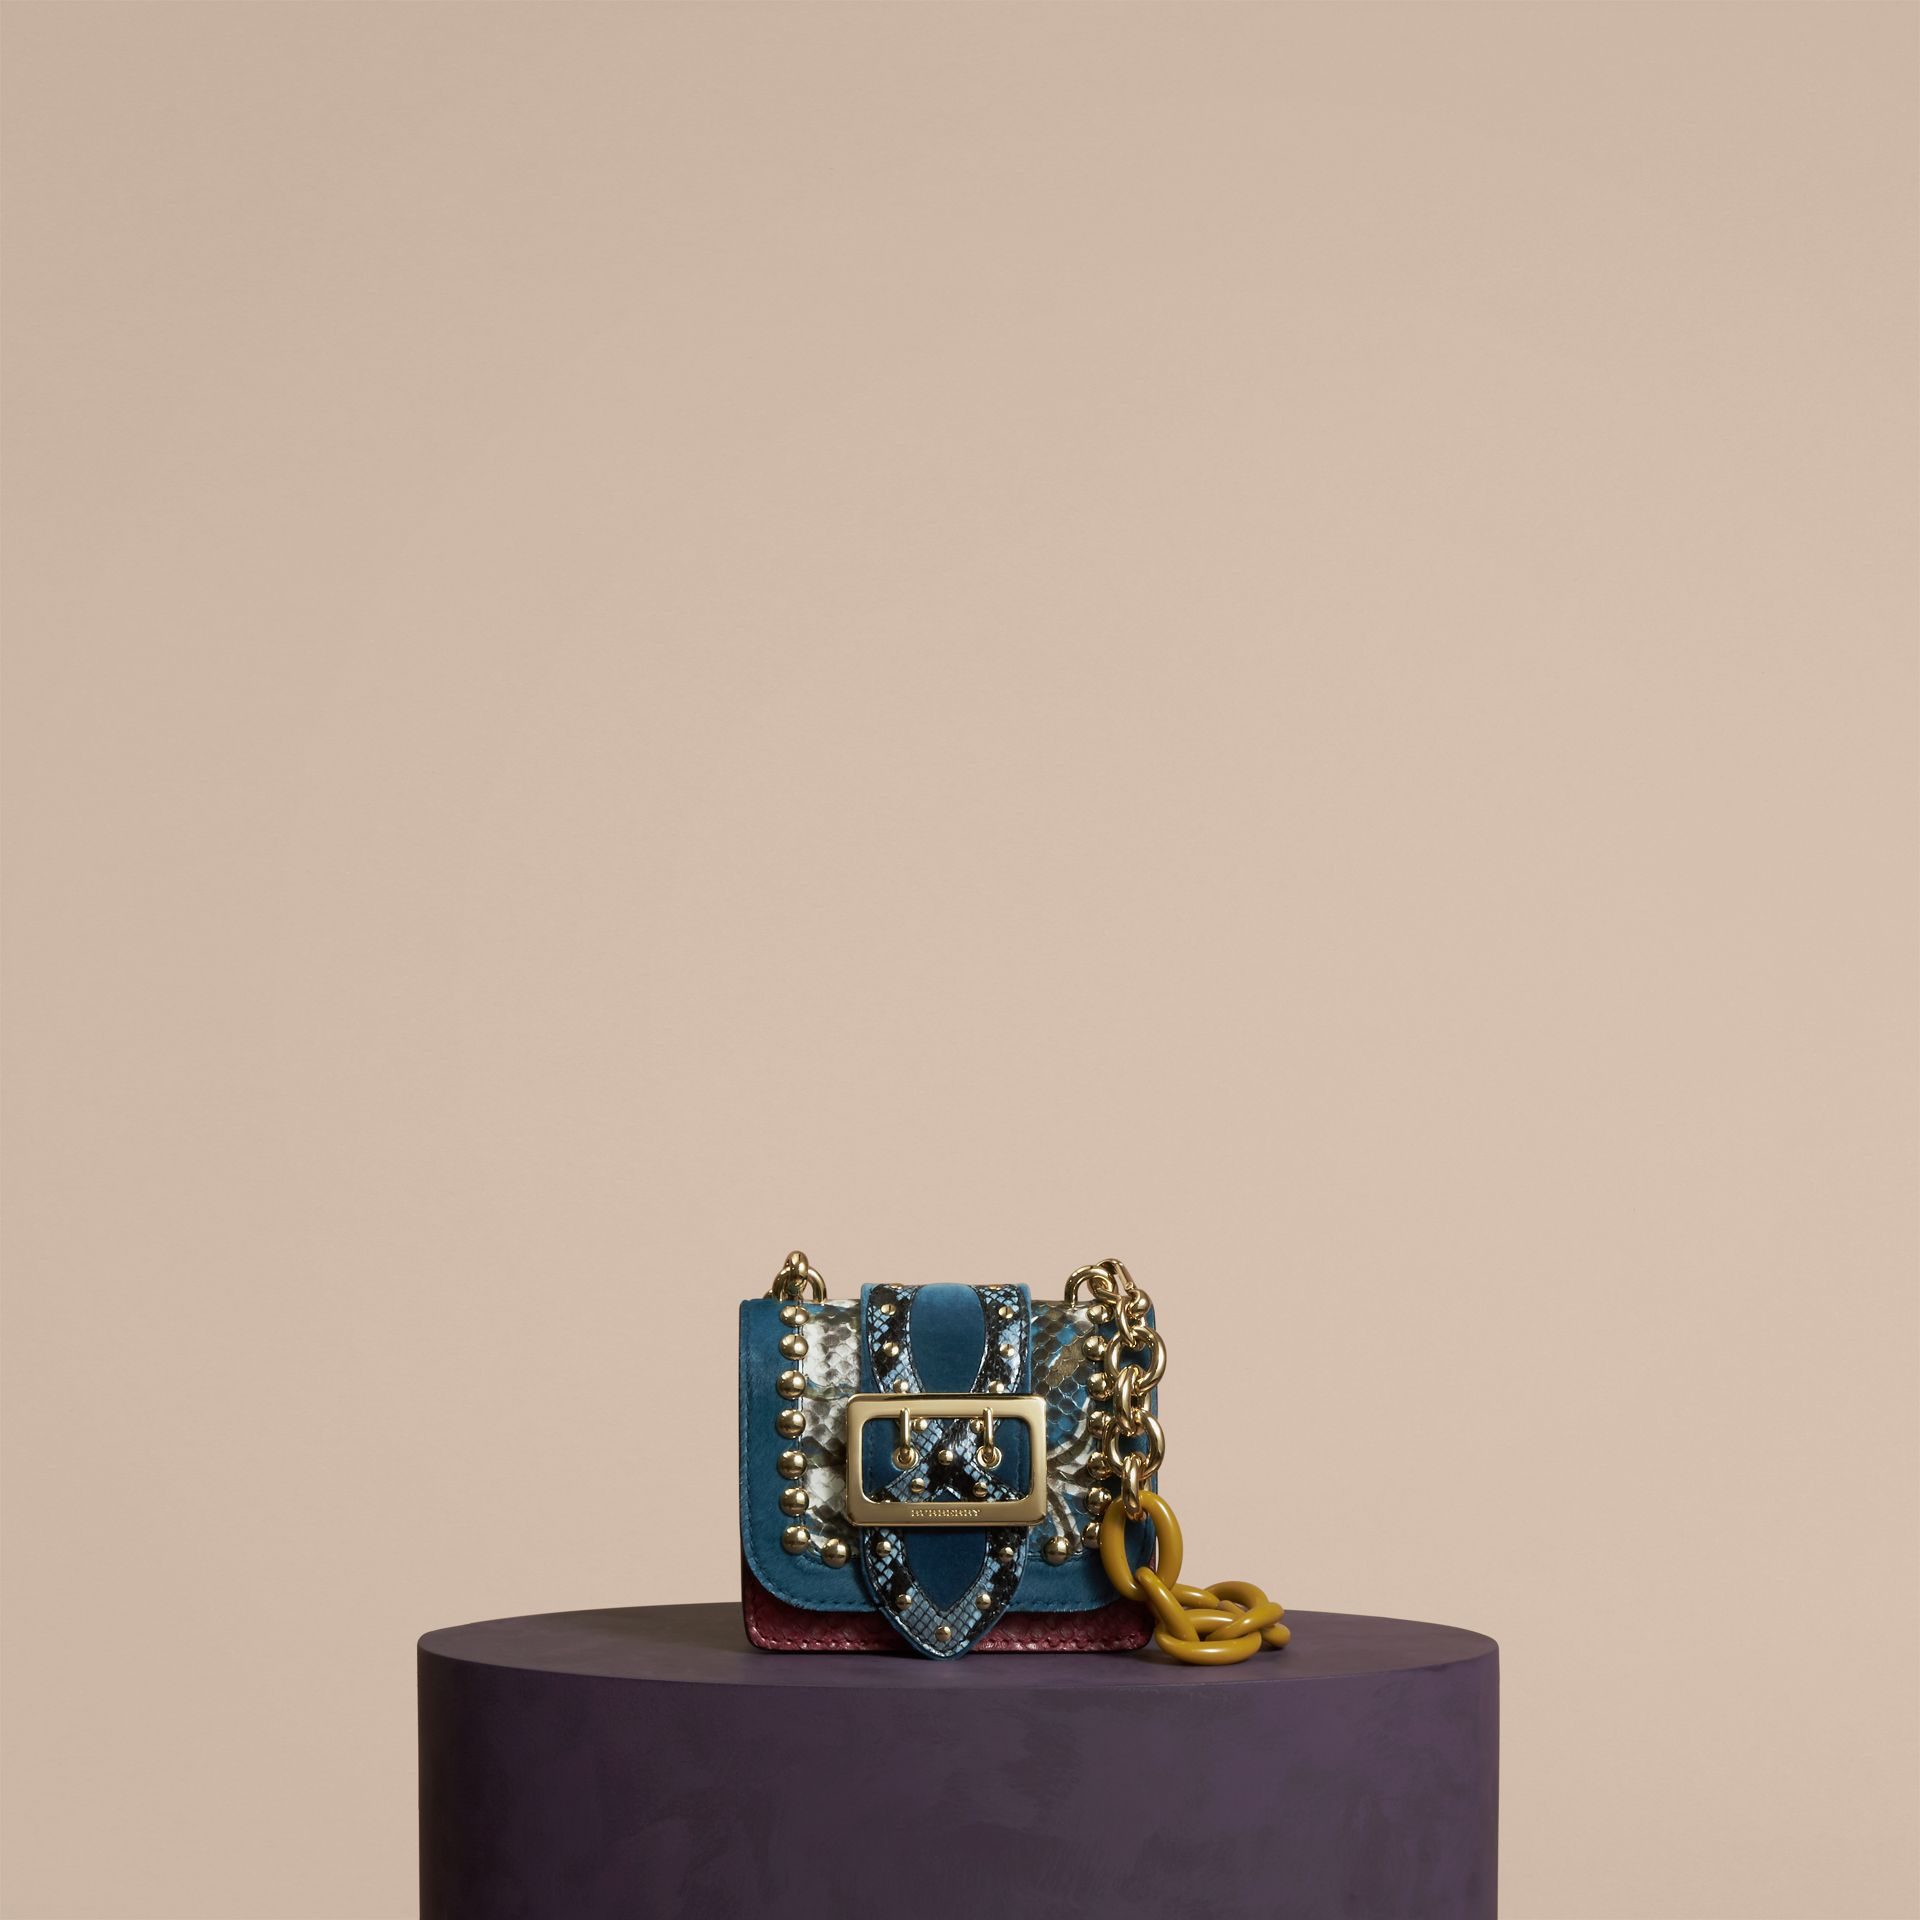 Pale opal The Mini Square Buckle Bag in Calfskin, Snakeskin and Velvet Pale Opal - gallery image 7